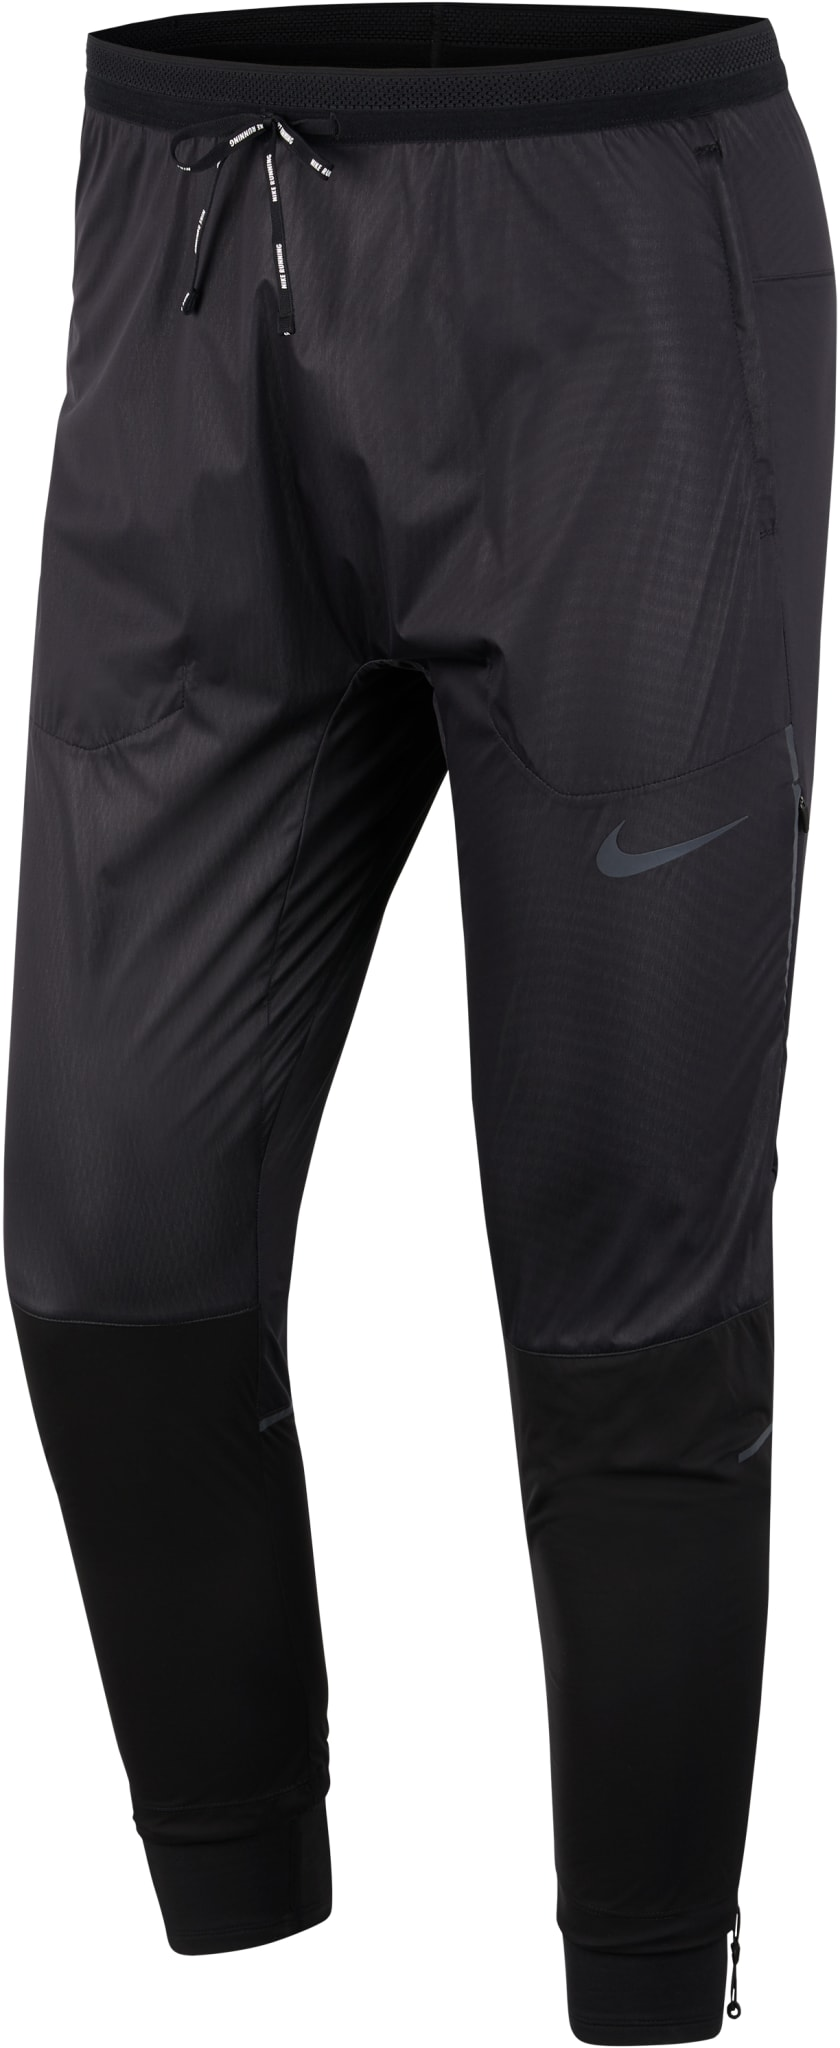 Swift Shield Men's Running Pants